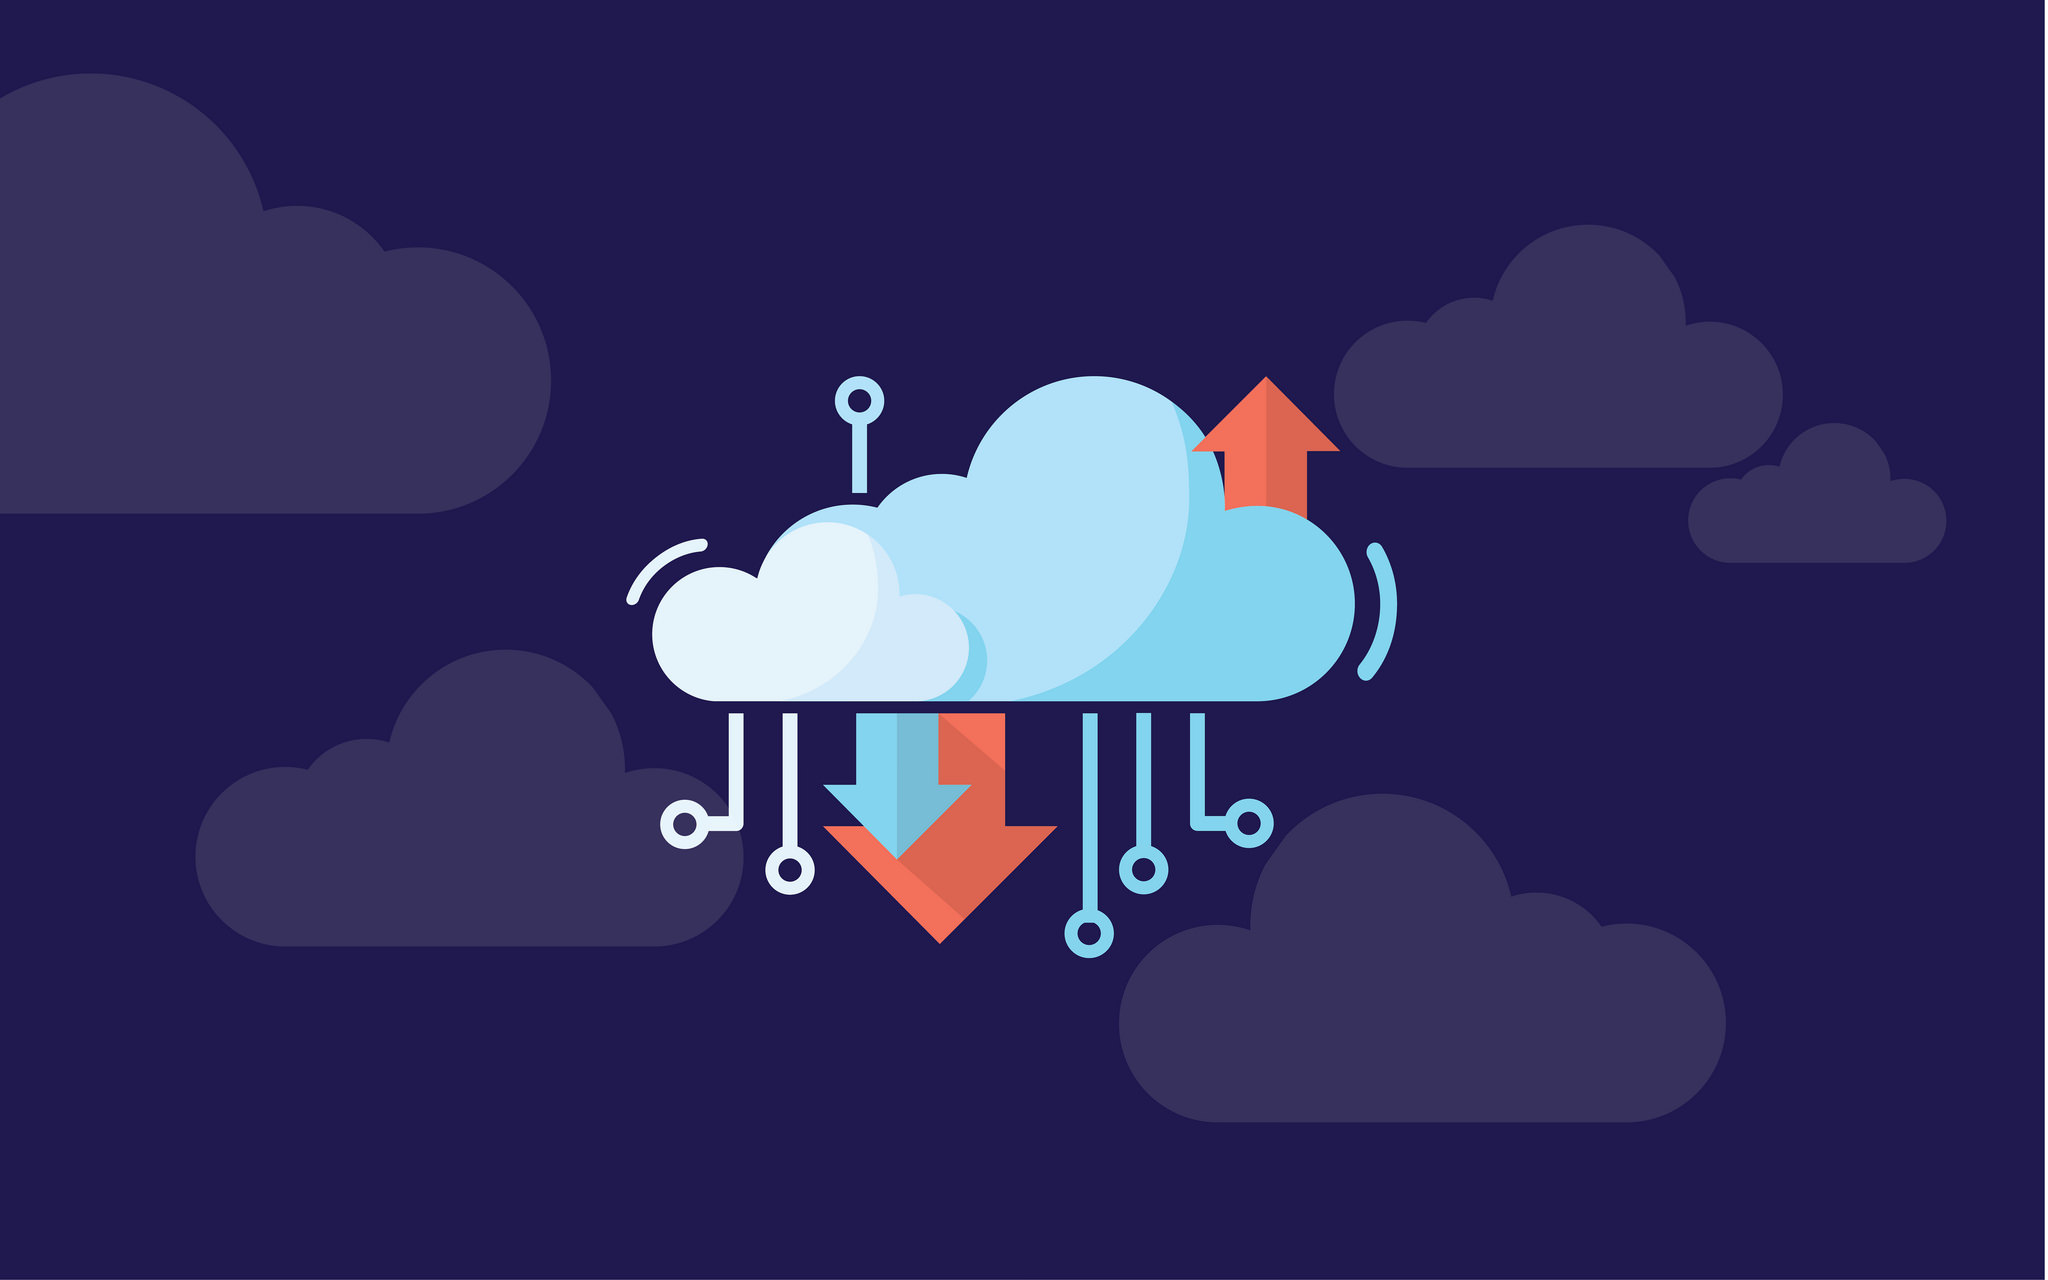 How cloud computing is changing IT